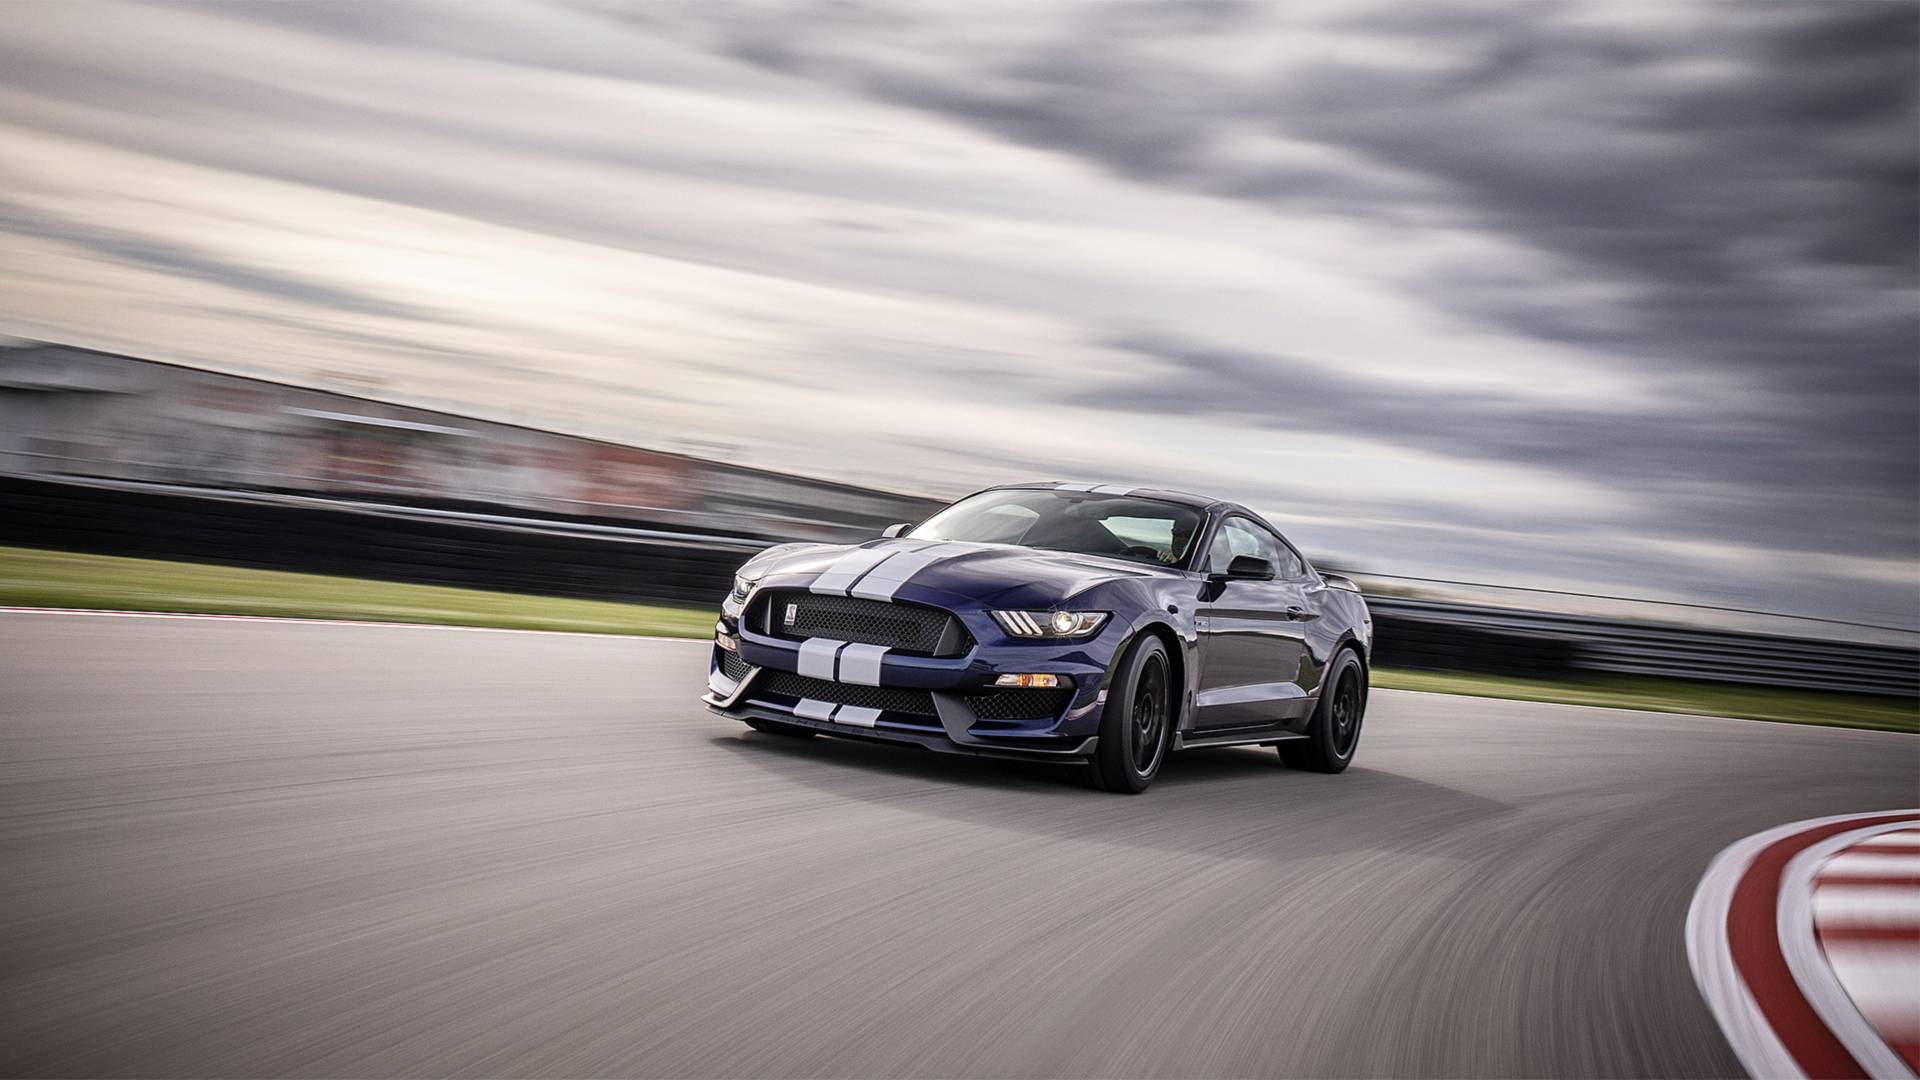 Ford top managers have expressed their hopes that the facelift of the Ford Mustang Shelby GT350 will improve sales of this particular car series